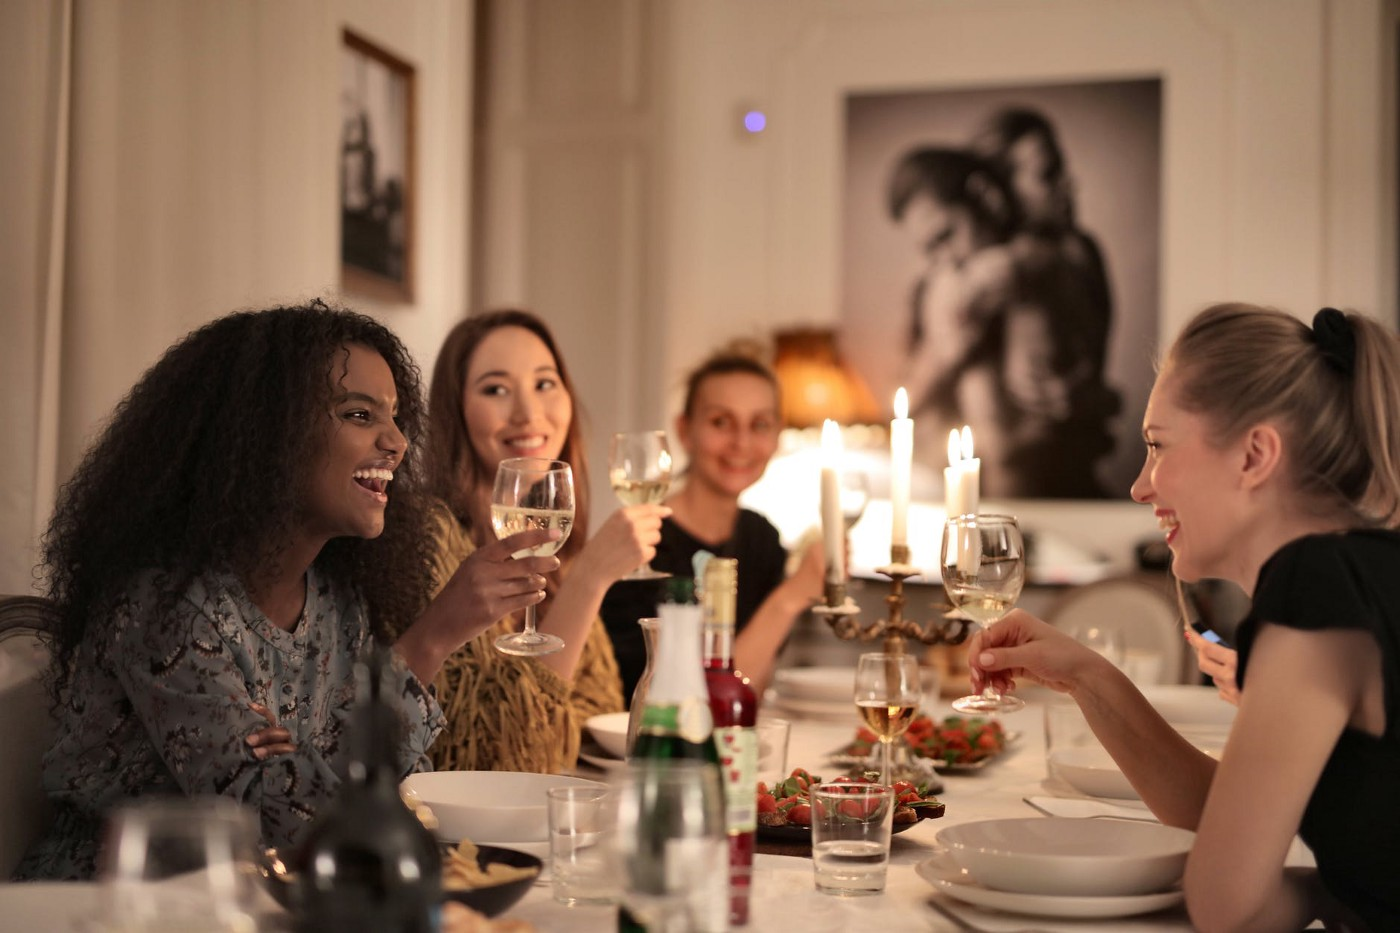 A group of friends laughing at a dinner party